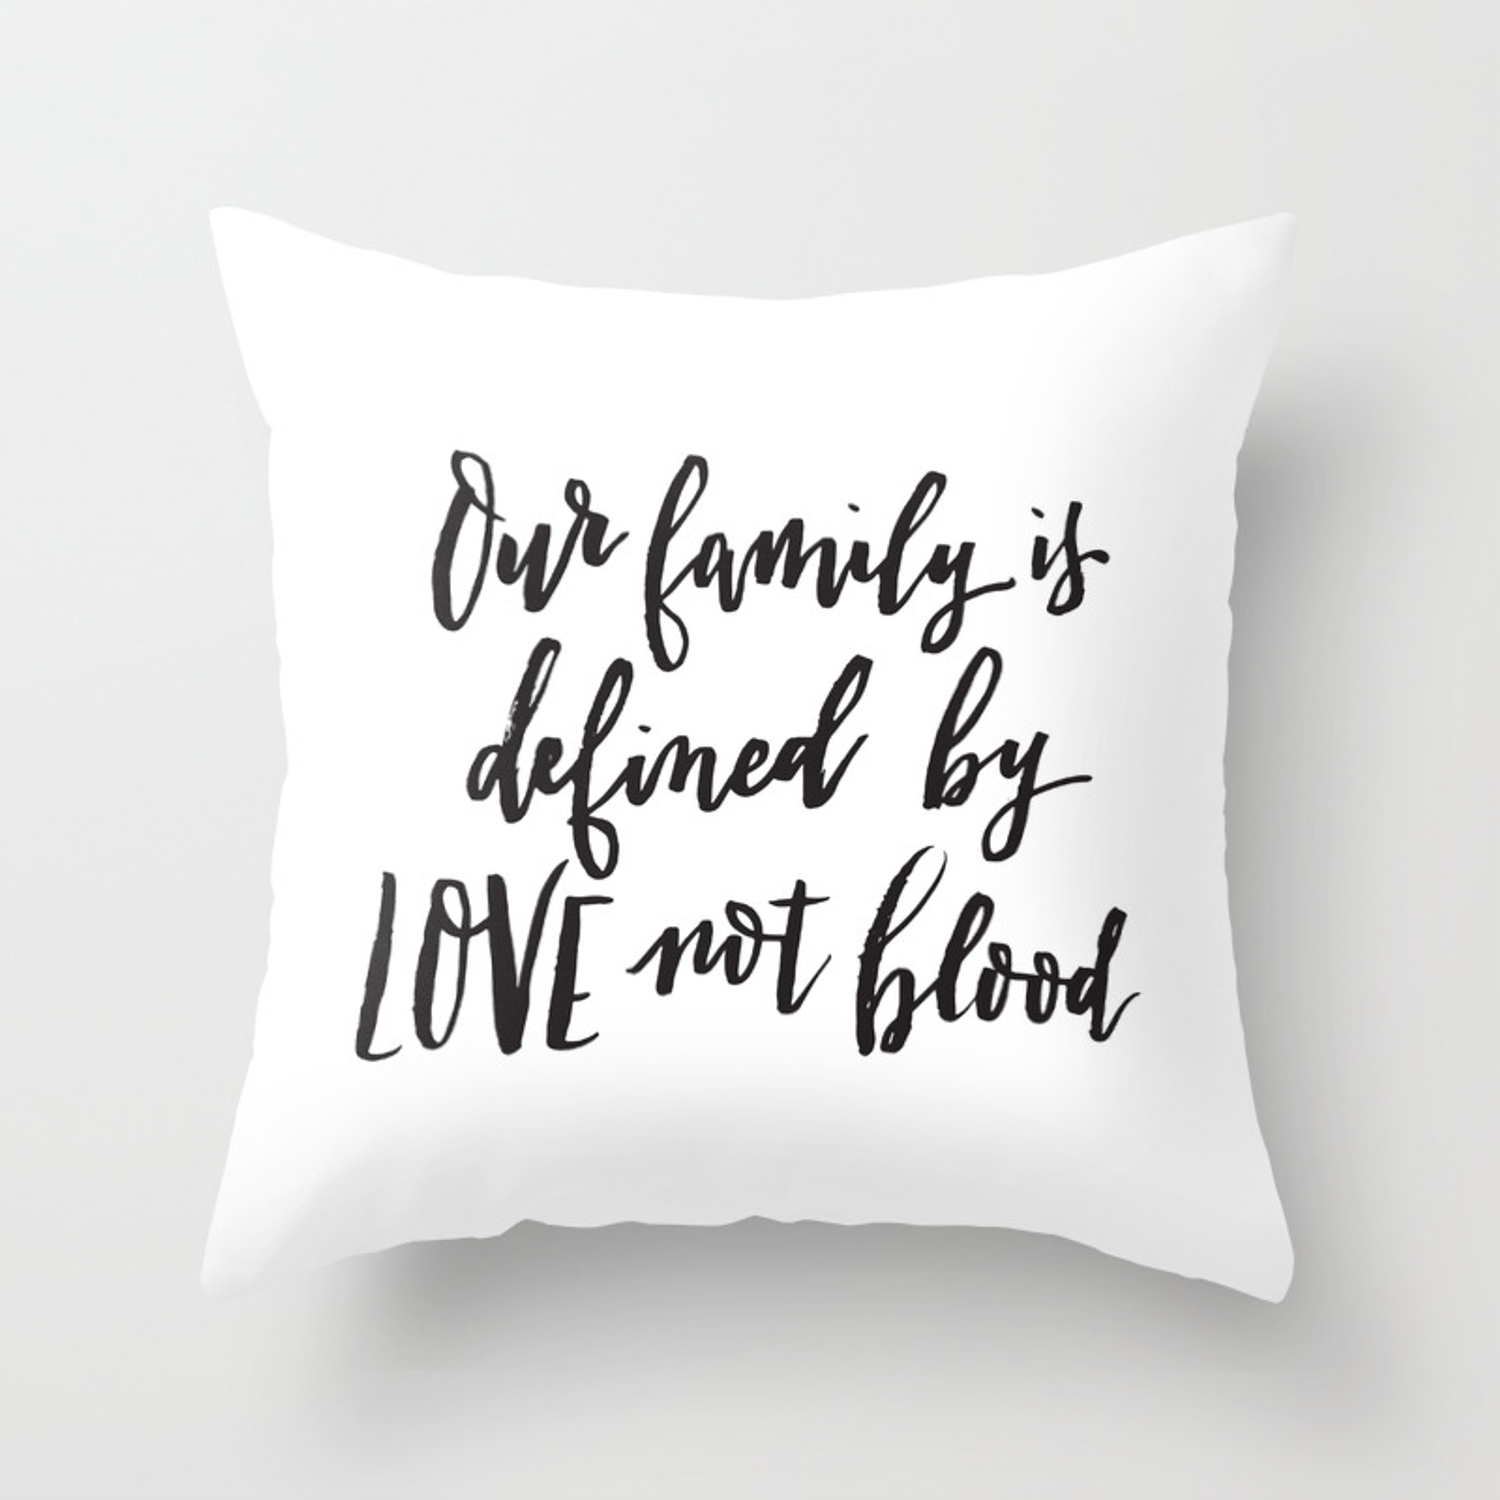 Our family is defined by LOVE not blood - Hand lettered inspirational quote  Throw Pillow